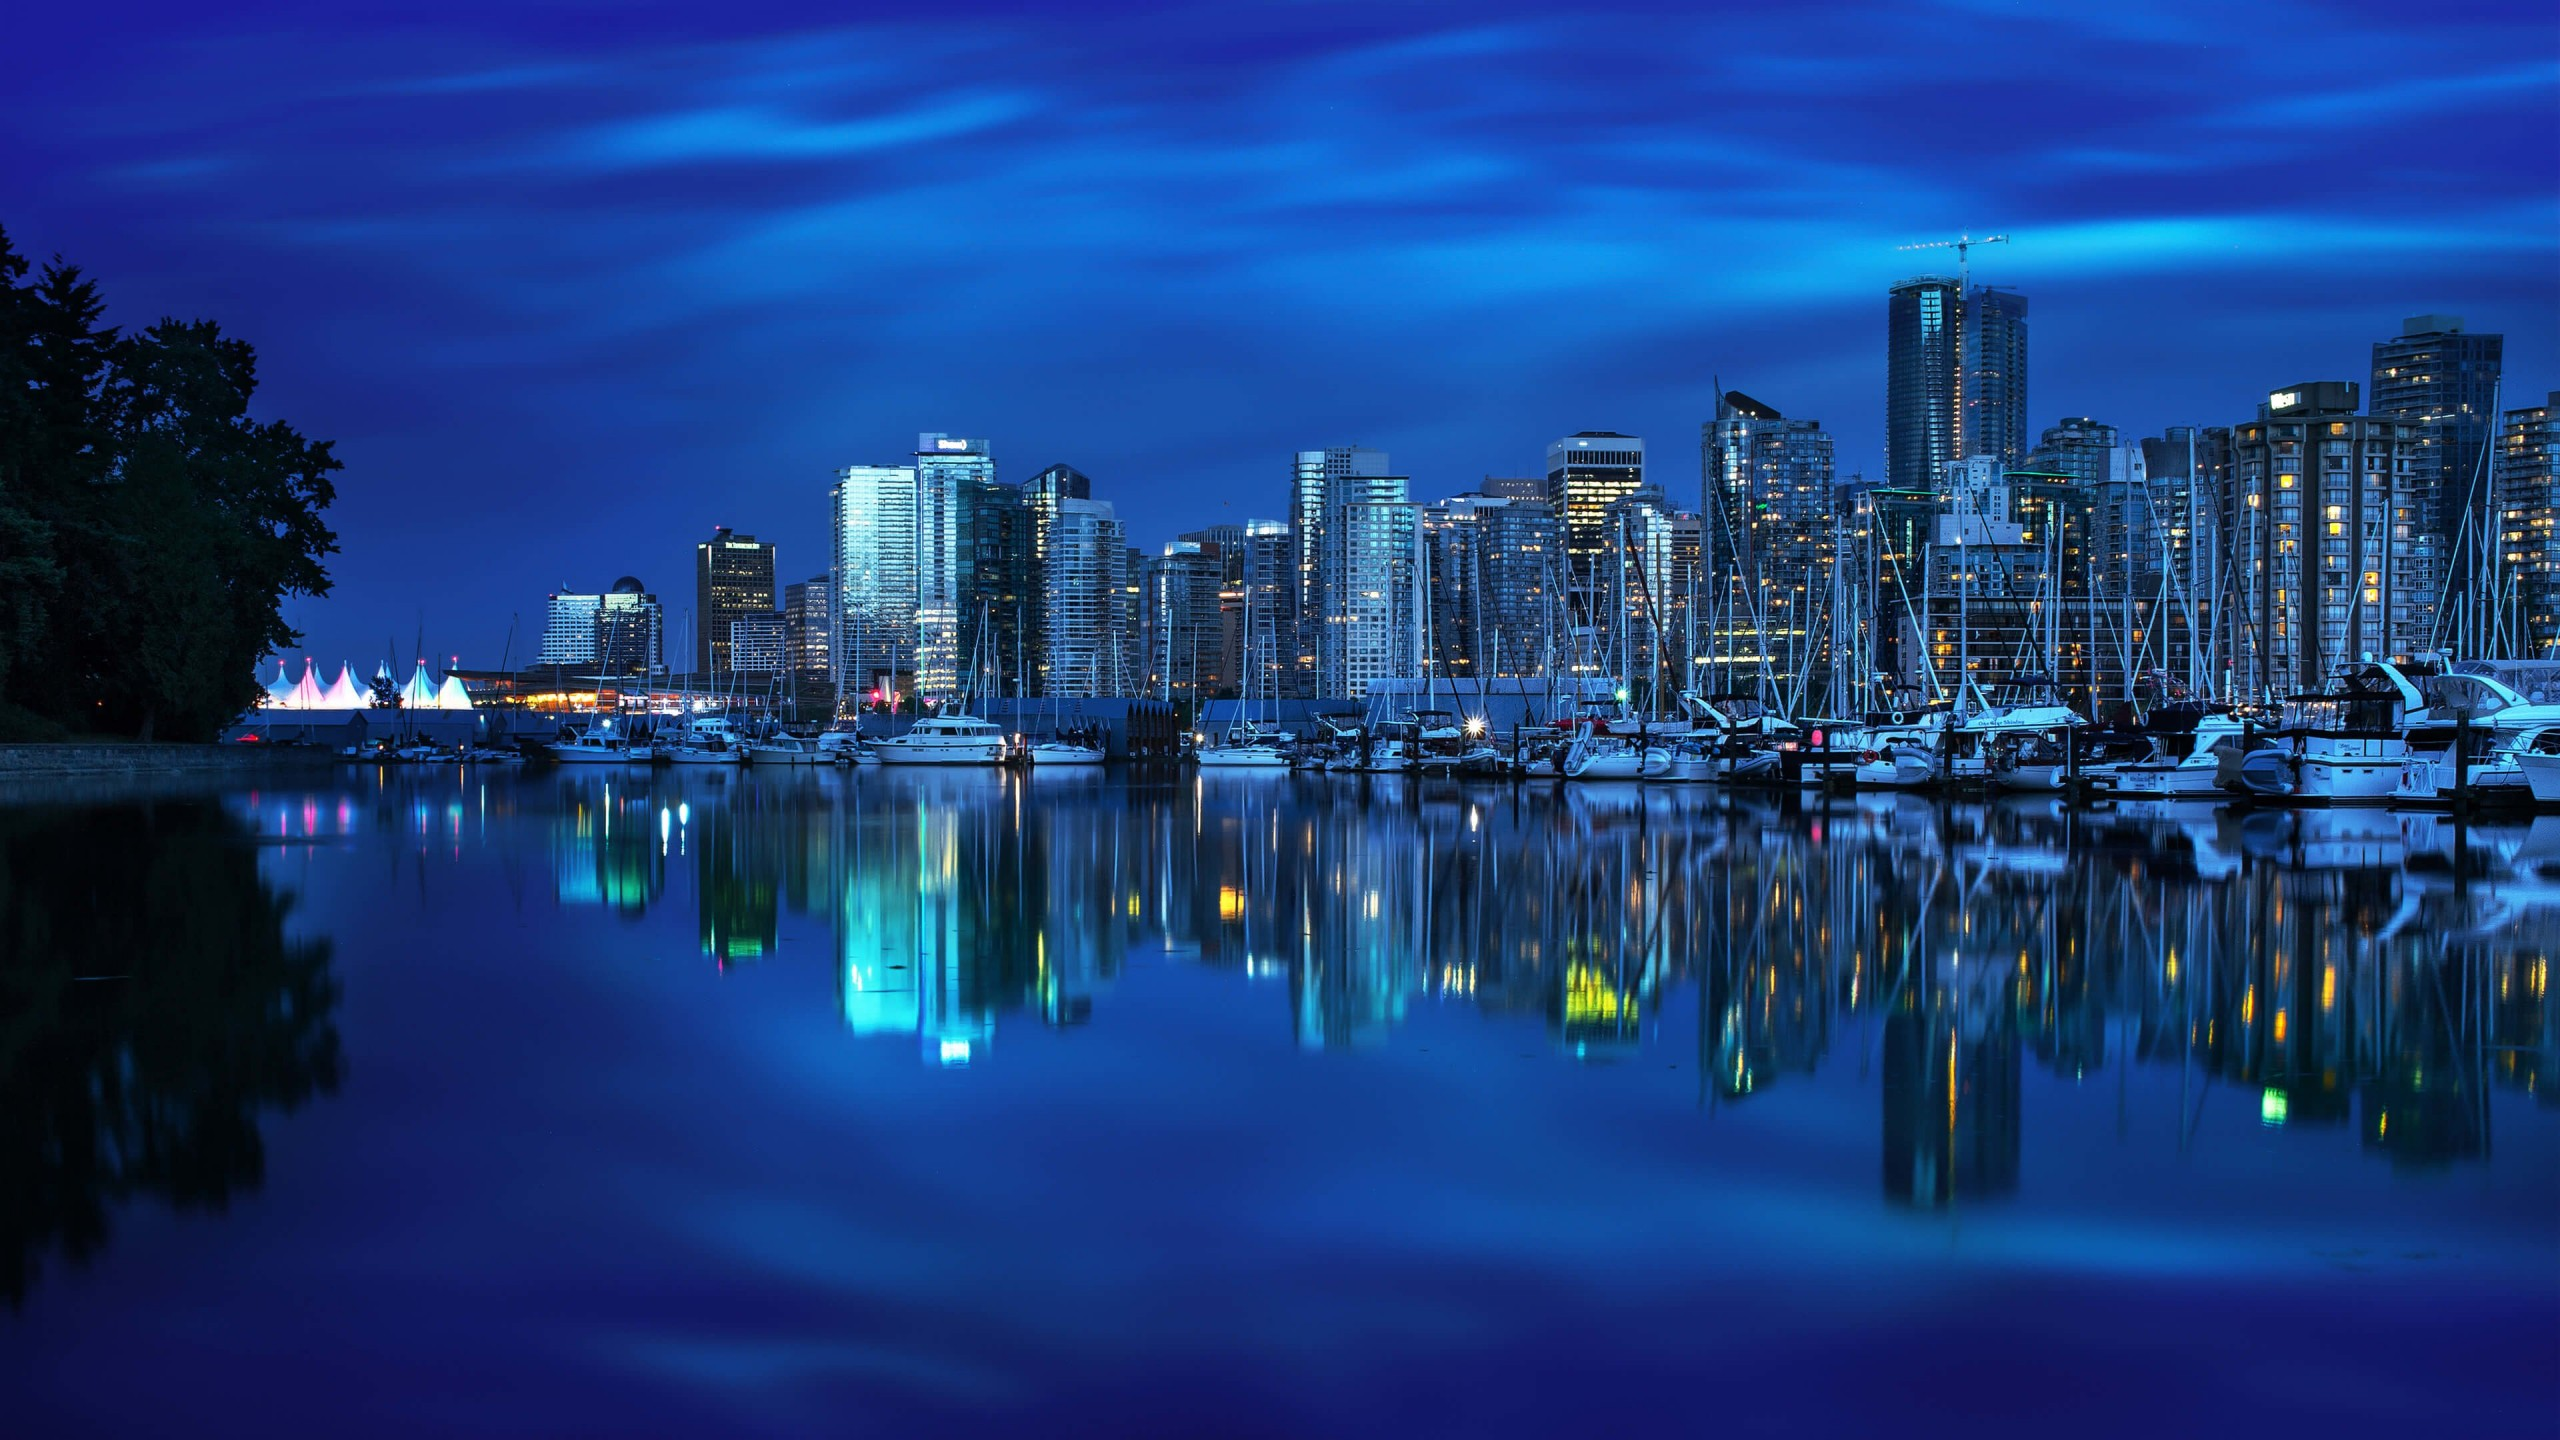 Coal Harbour Marina, Vancouver Wallpaper for Desktop 2560x1440